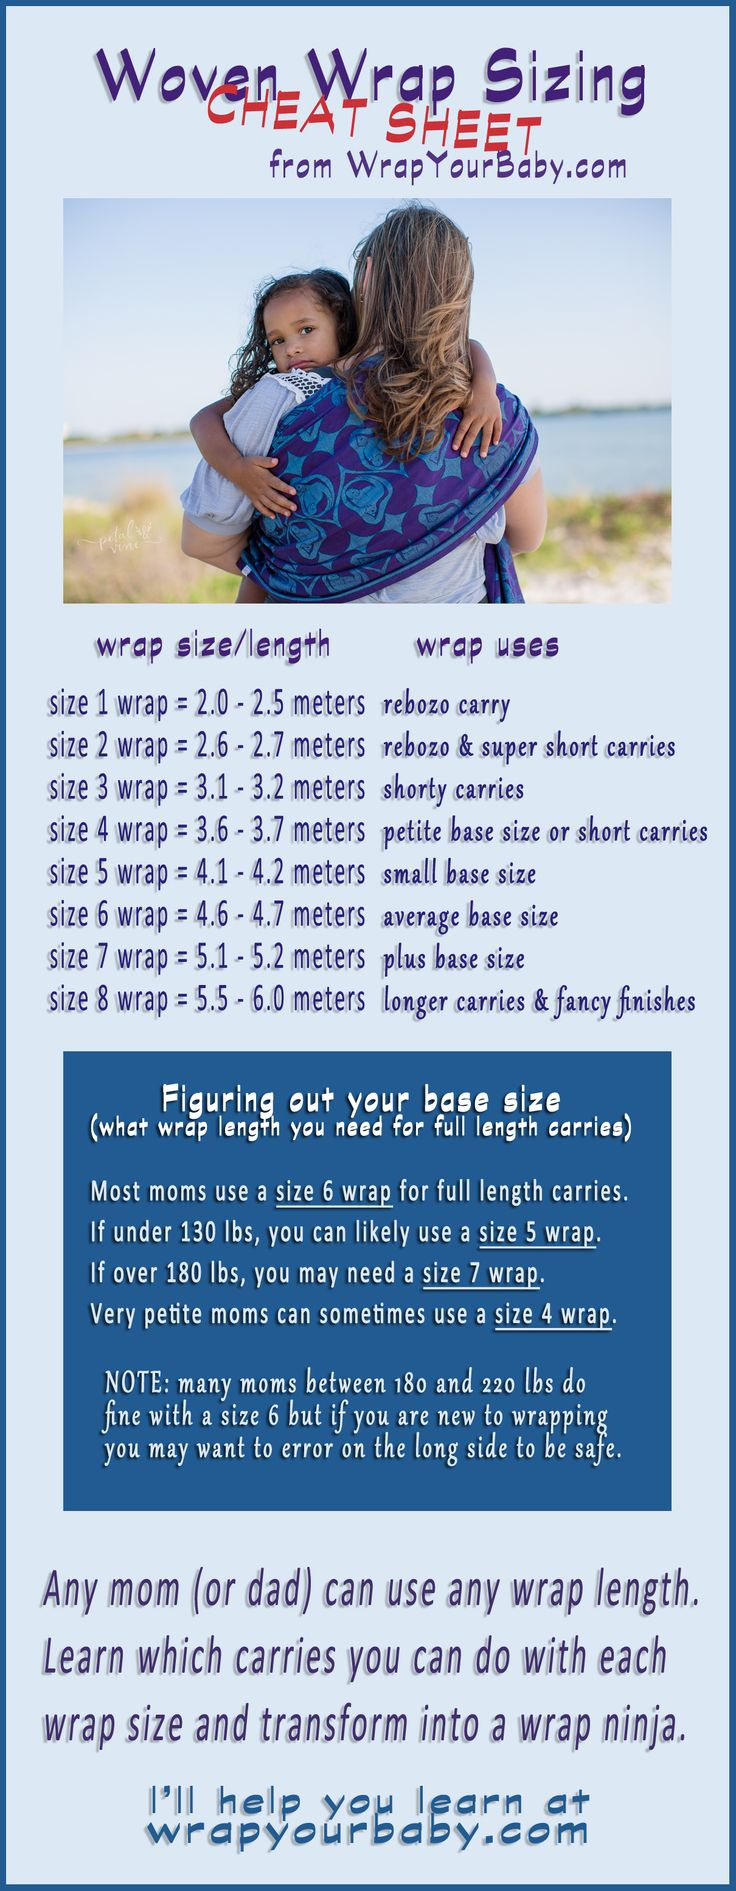 Woven Wrap Sizing Made Simple with size conversion to meters, what each wrap length is good for, how to find your base size wrap, and lists of tons of carries you can do with each wrap length at http://wrapyourbaby.com/wovenwraplength.html